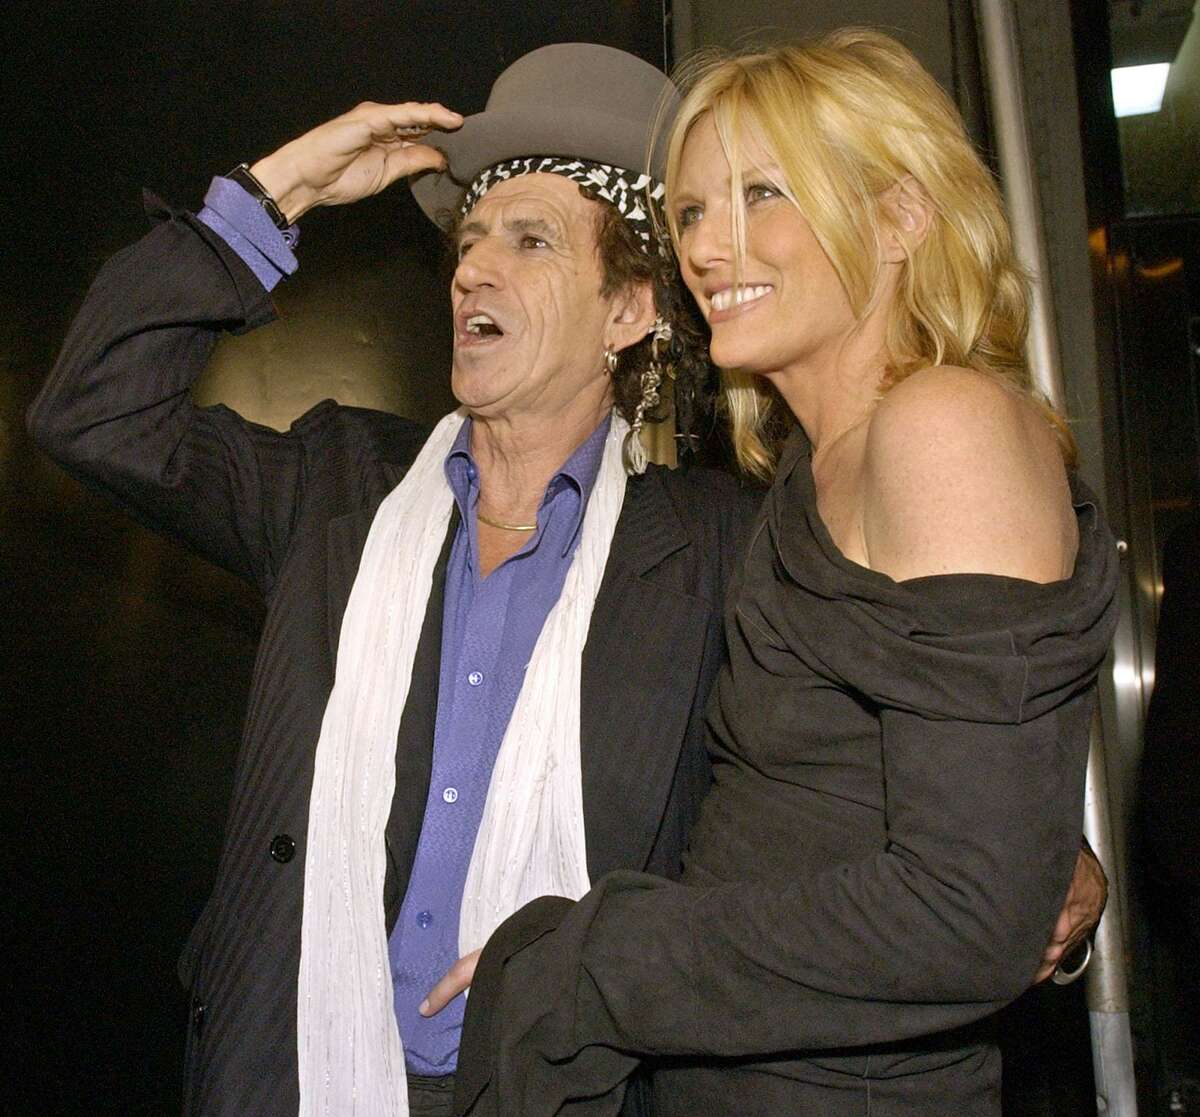 Rolling Stones' guitarist Keith Richards, left, arrives with his wife Patti Hansen at the launch party of the four DVD collection